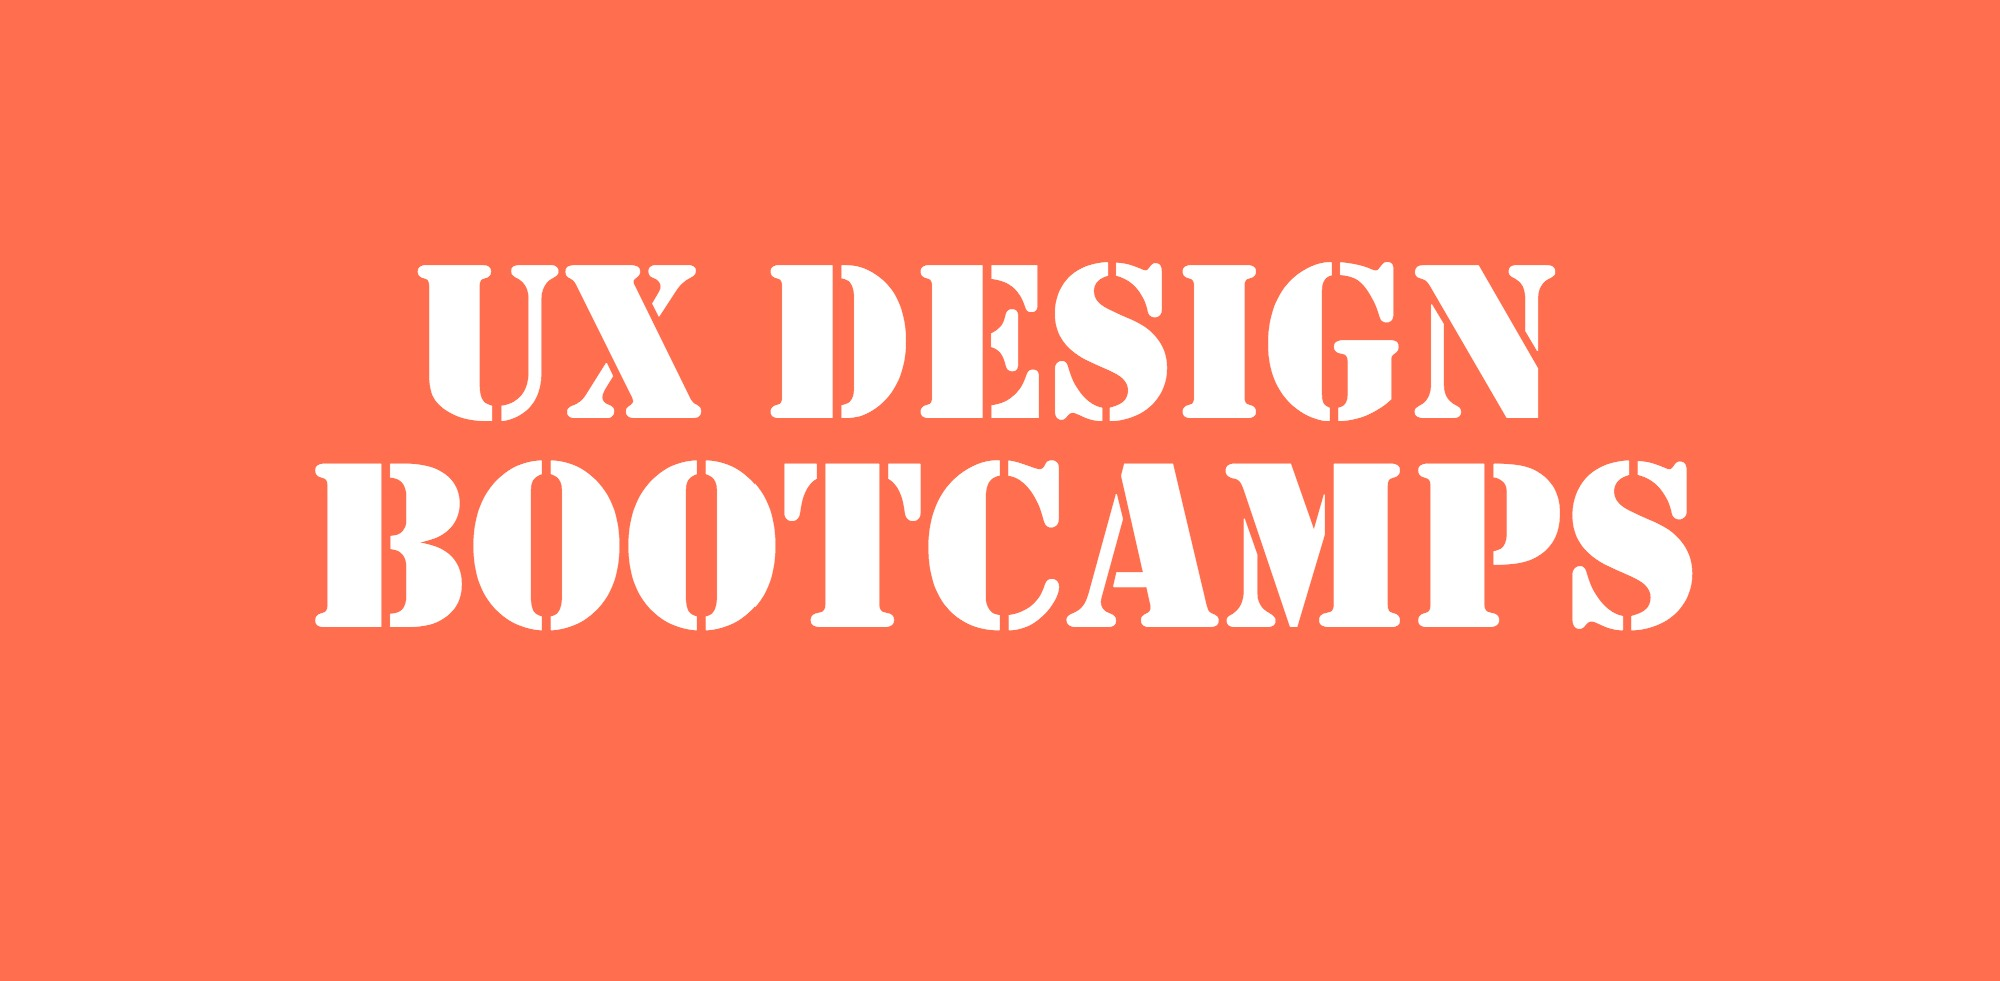 UX Design Bootcamps pic